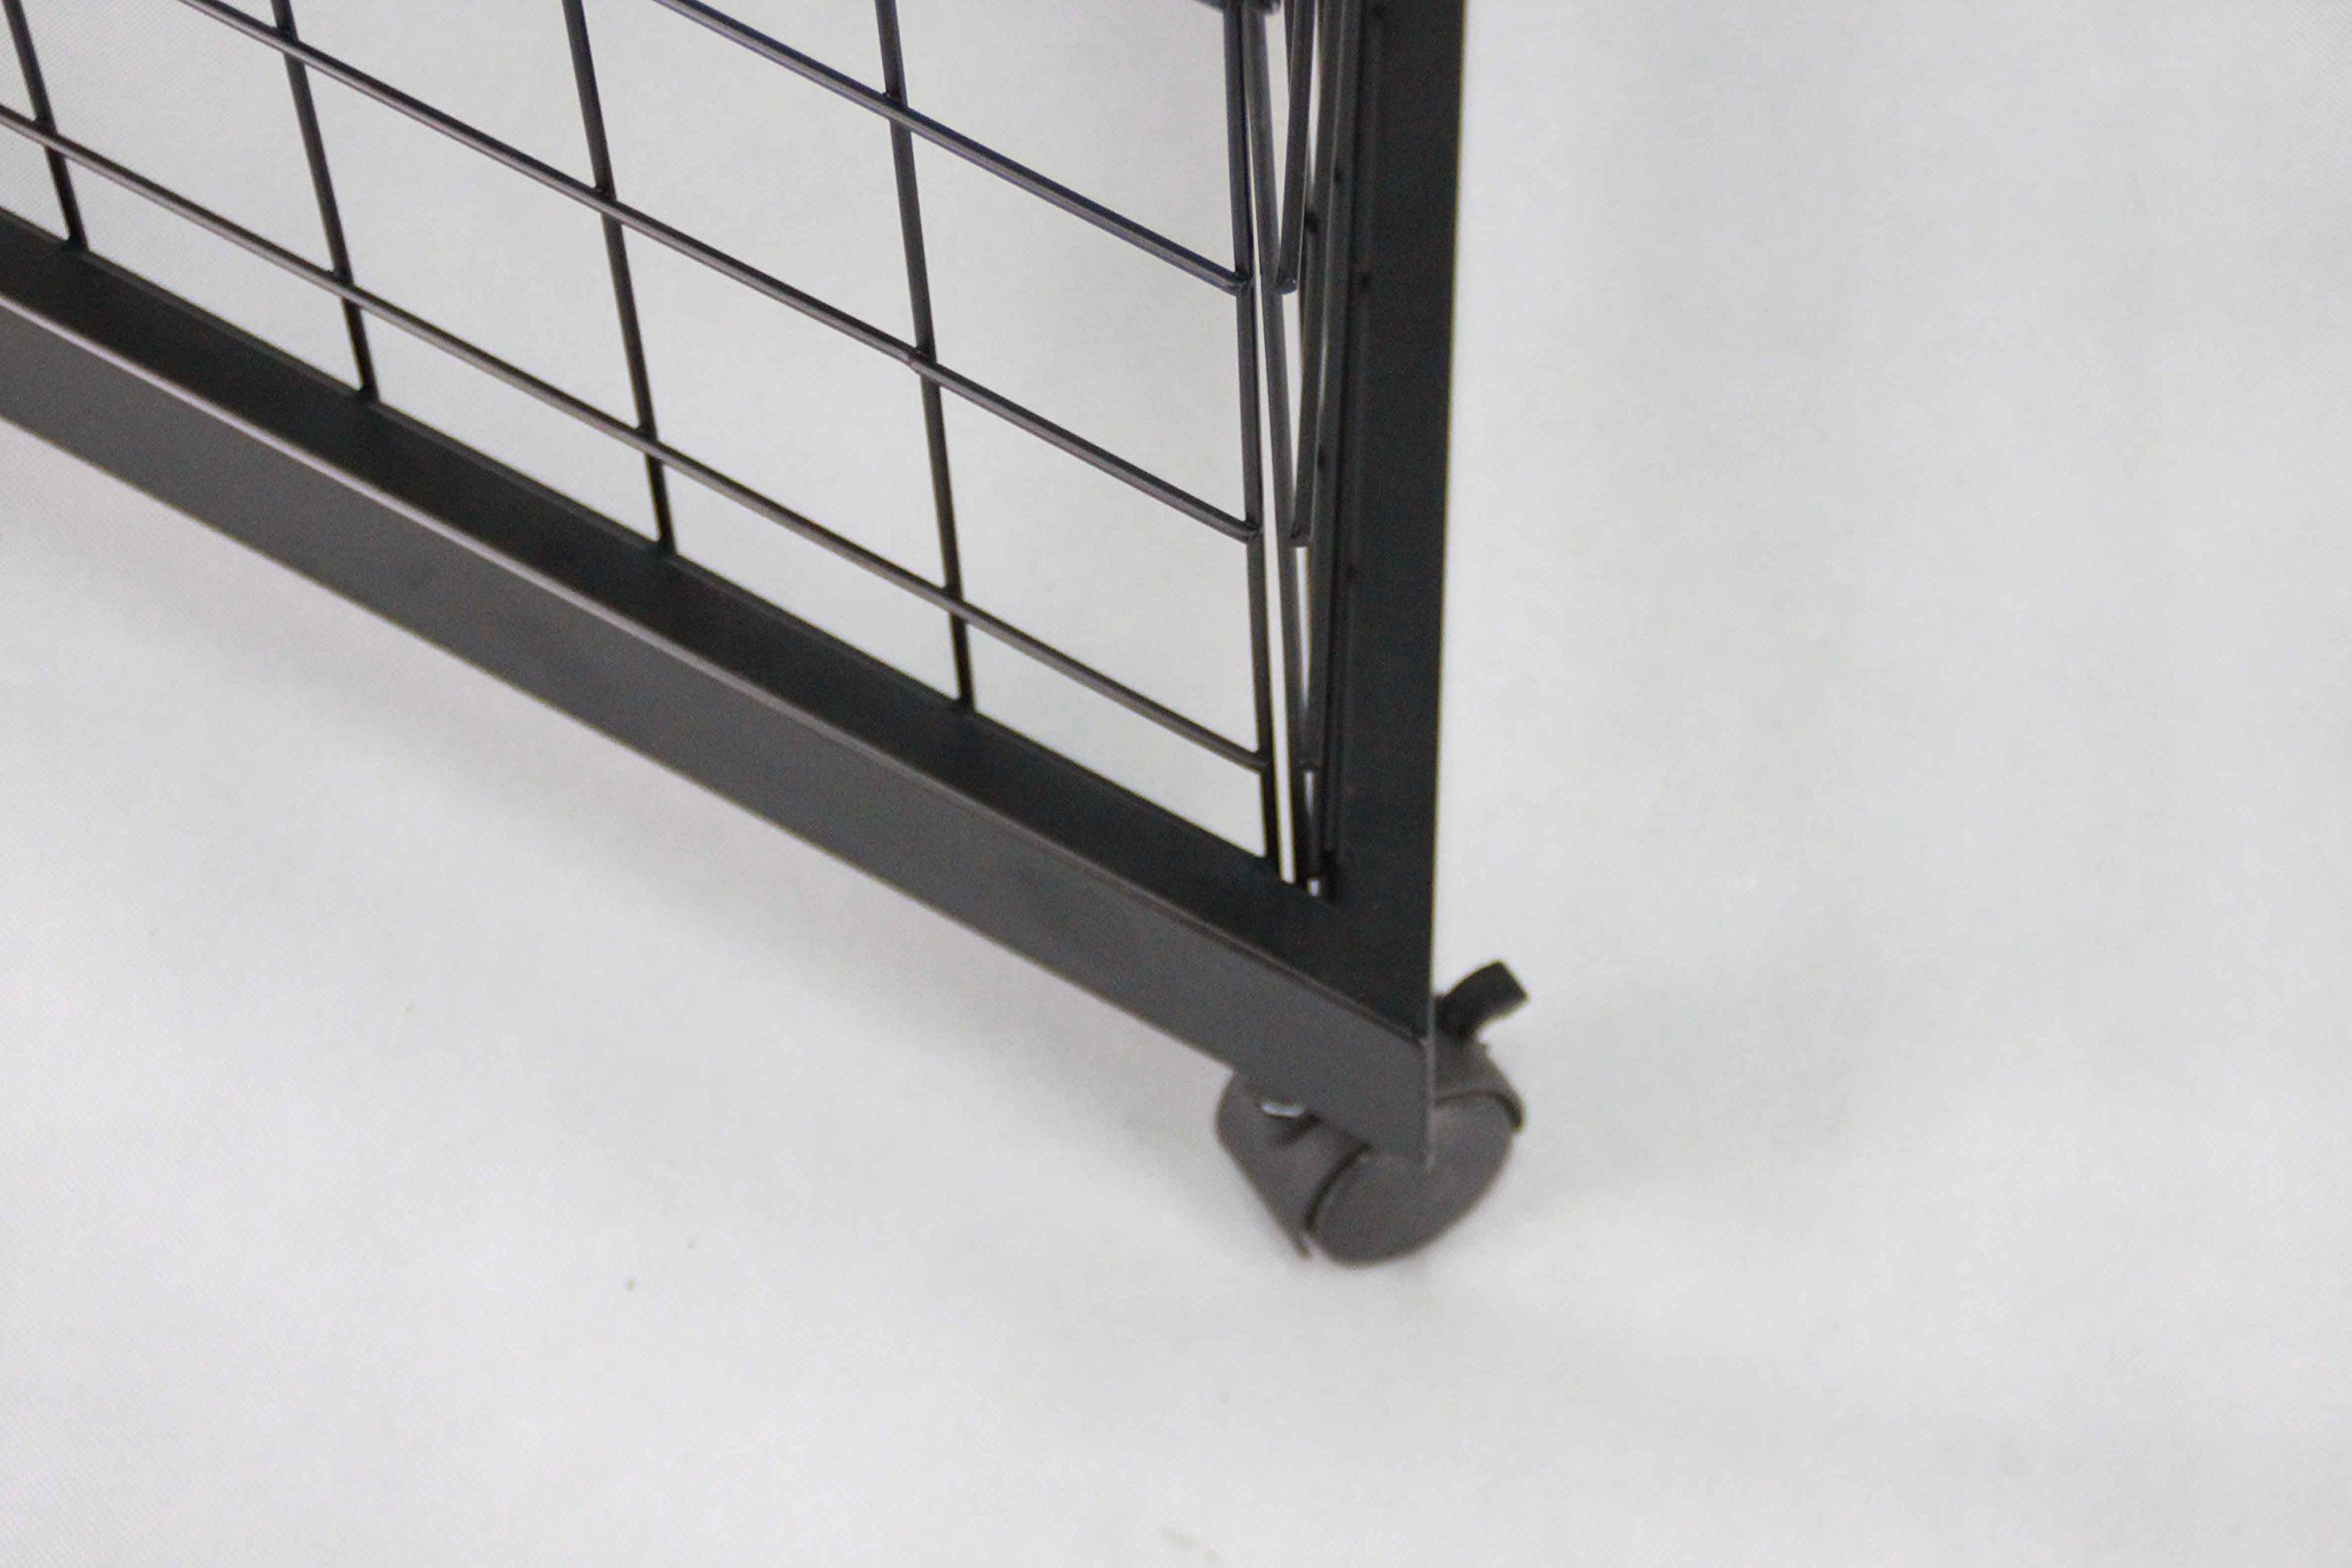 3-Sided Gridwall Fixtures Wheeled Bases, (12) Faceout Hooks-Black 19370